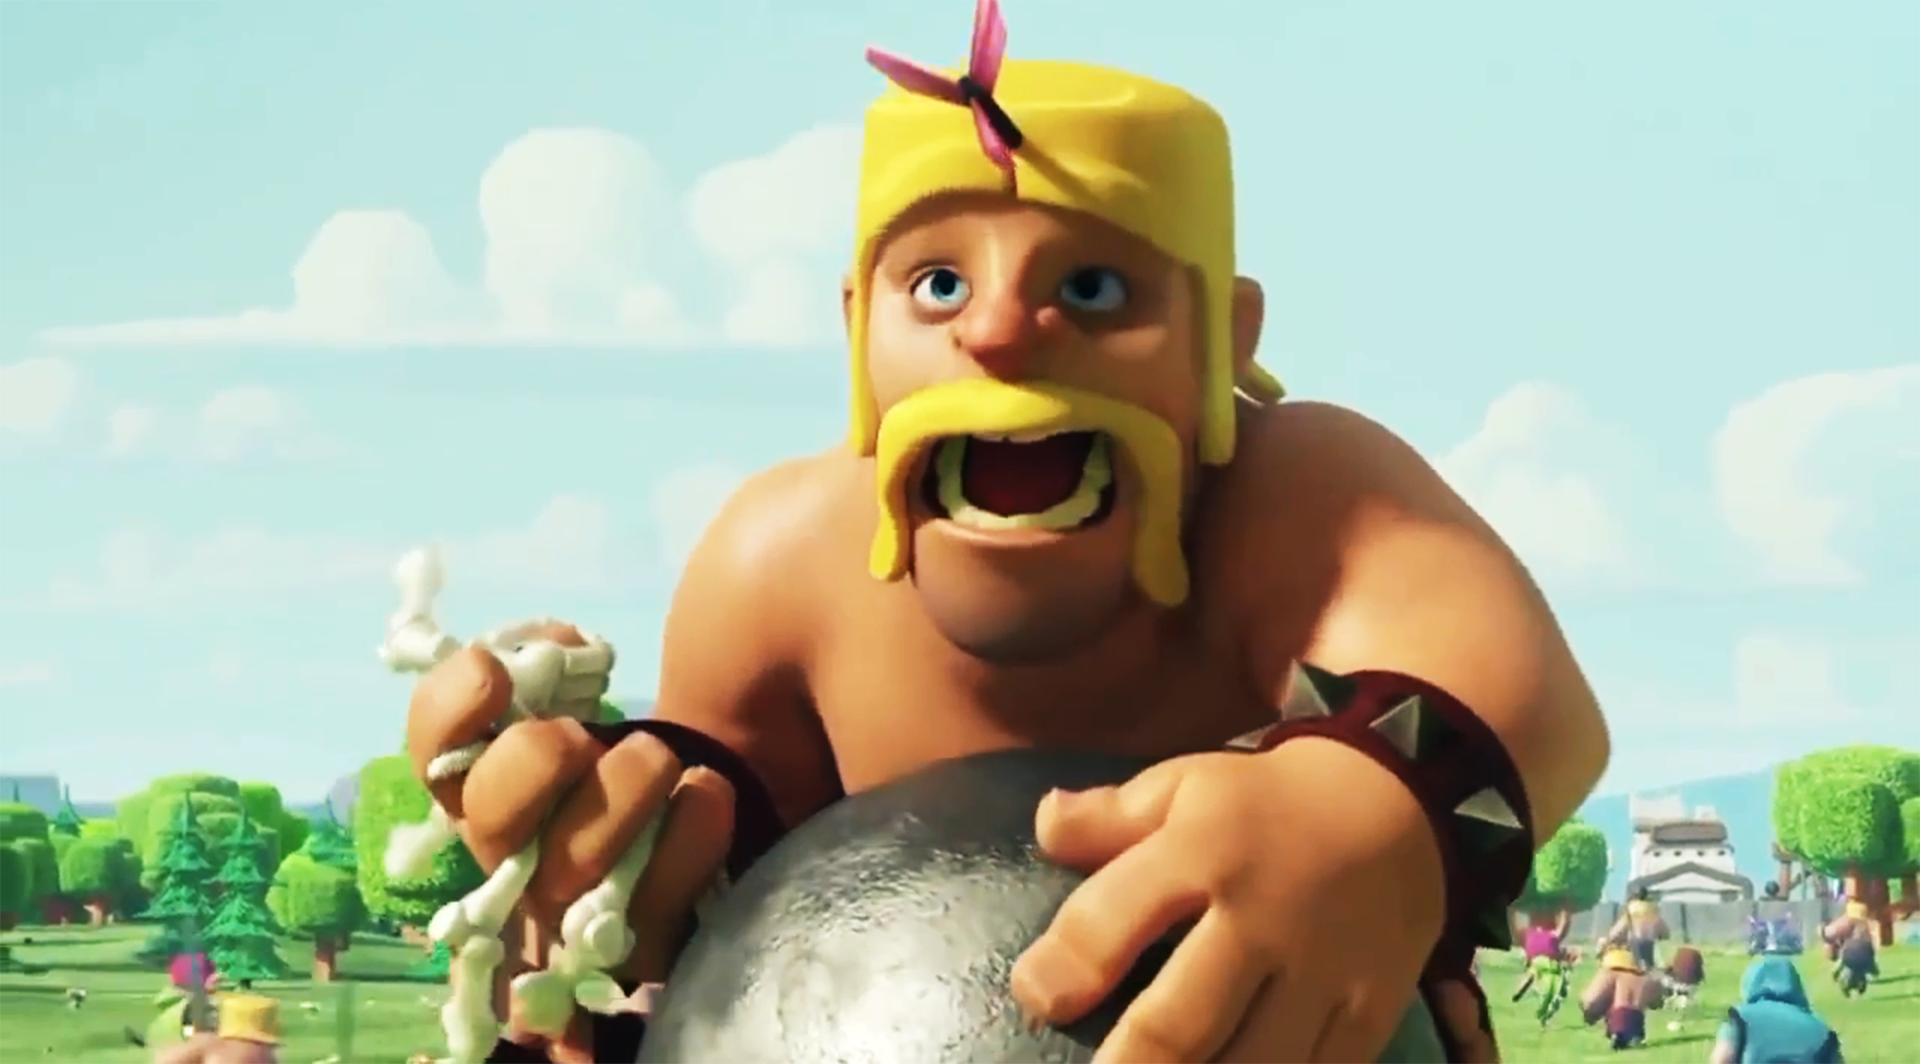 Barbarian Clash Of Clans Hd Hd Games 4k Wallpapers: Clash Of Clans Barbarian Wallpaper HD